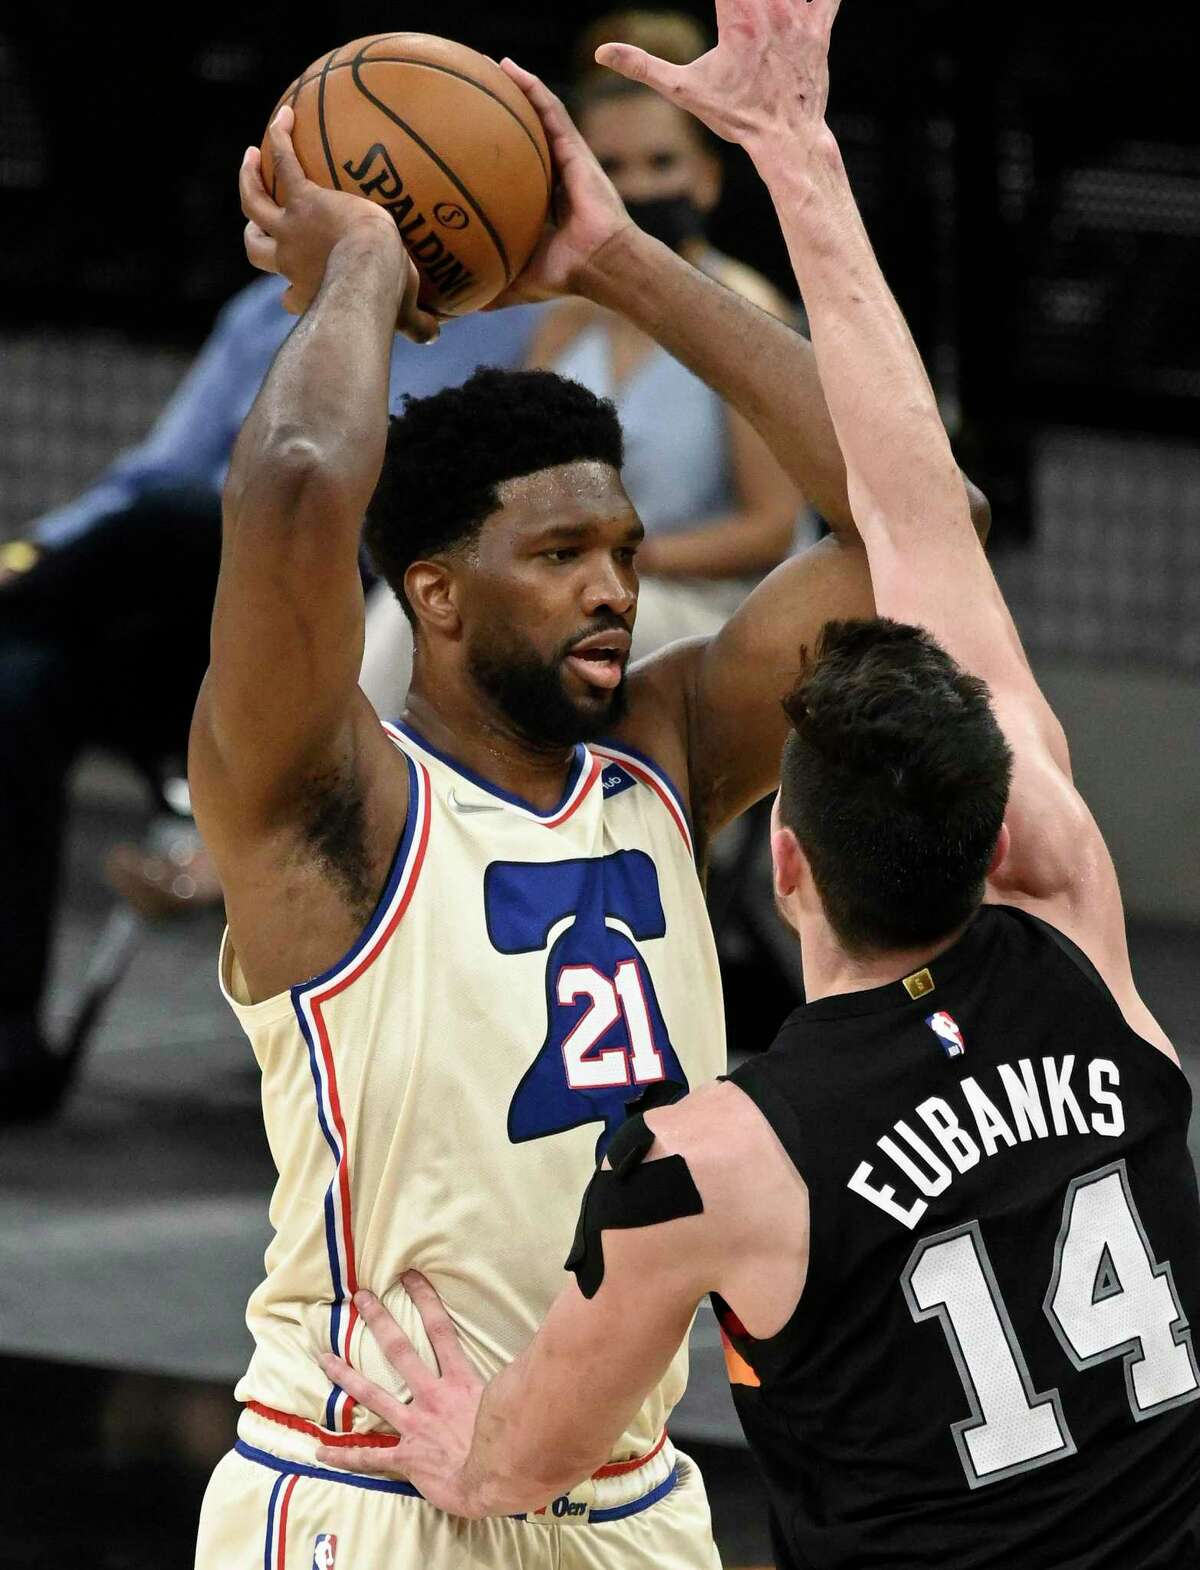 Philadelphia 76ers' Joel Embiid (21) looks to pass as he is defended by the Spurs' Drew Eubanks during the second half of an NBA basketball game on Sunday, May 2, 2021, in San Antonio.